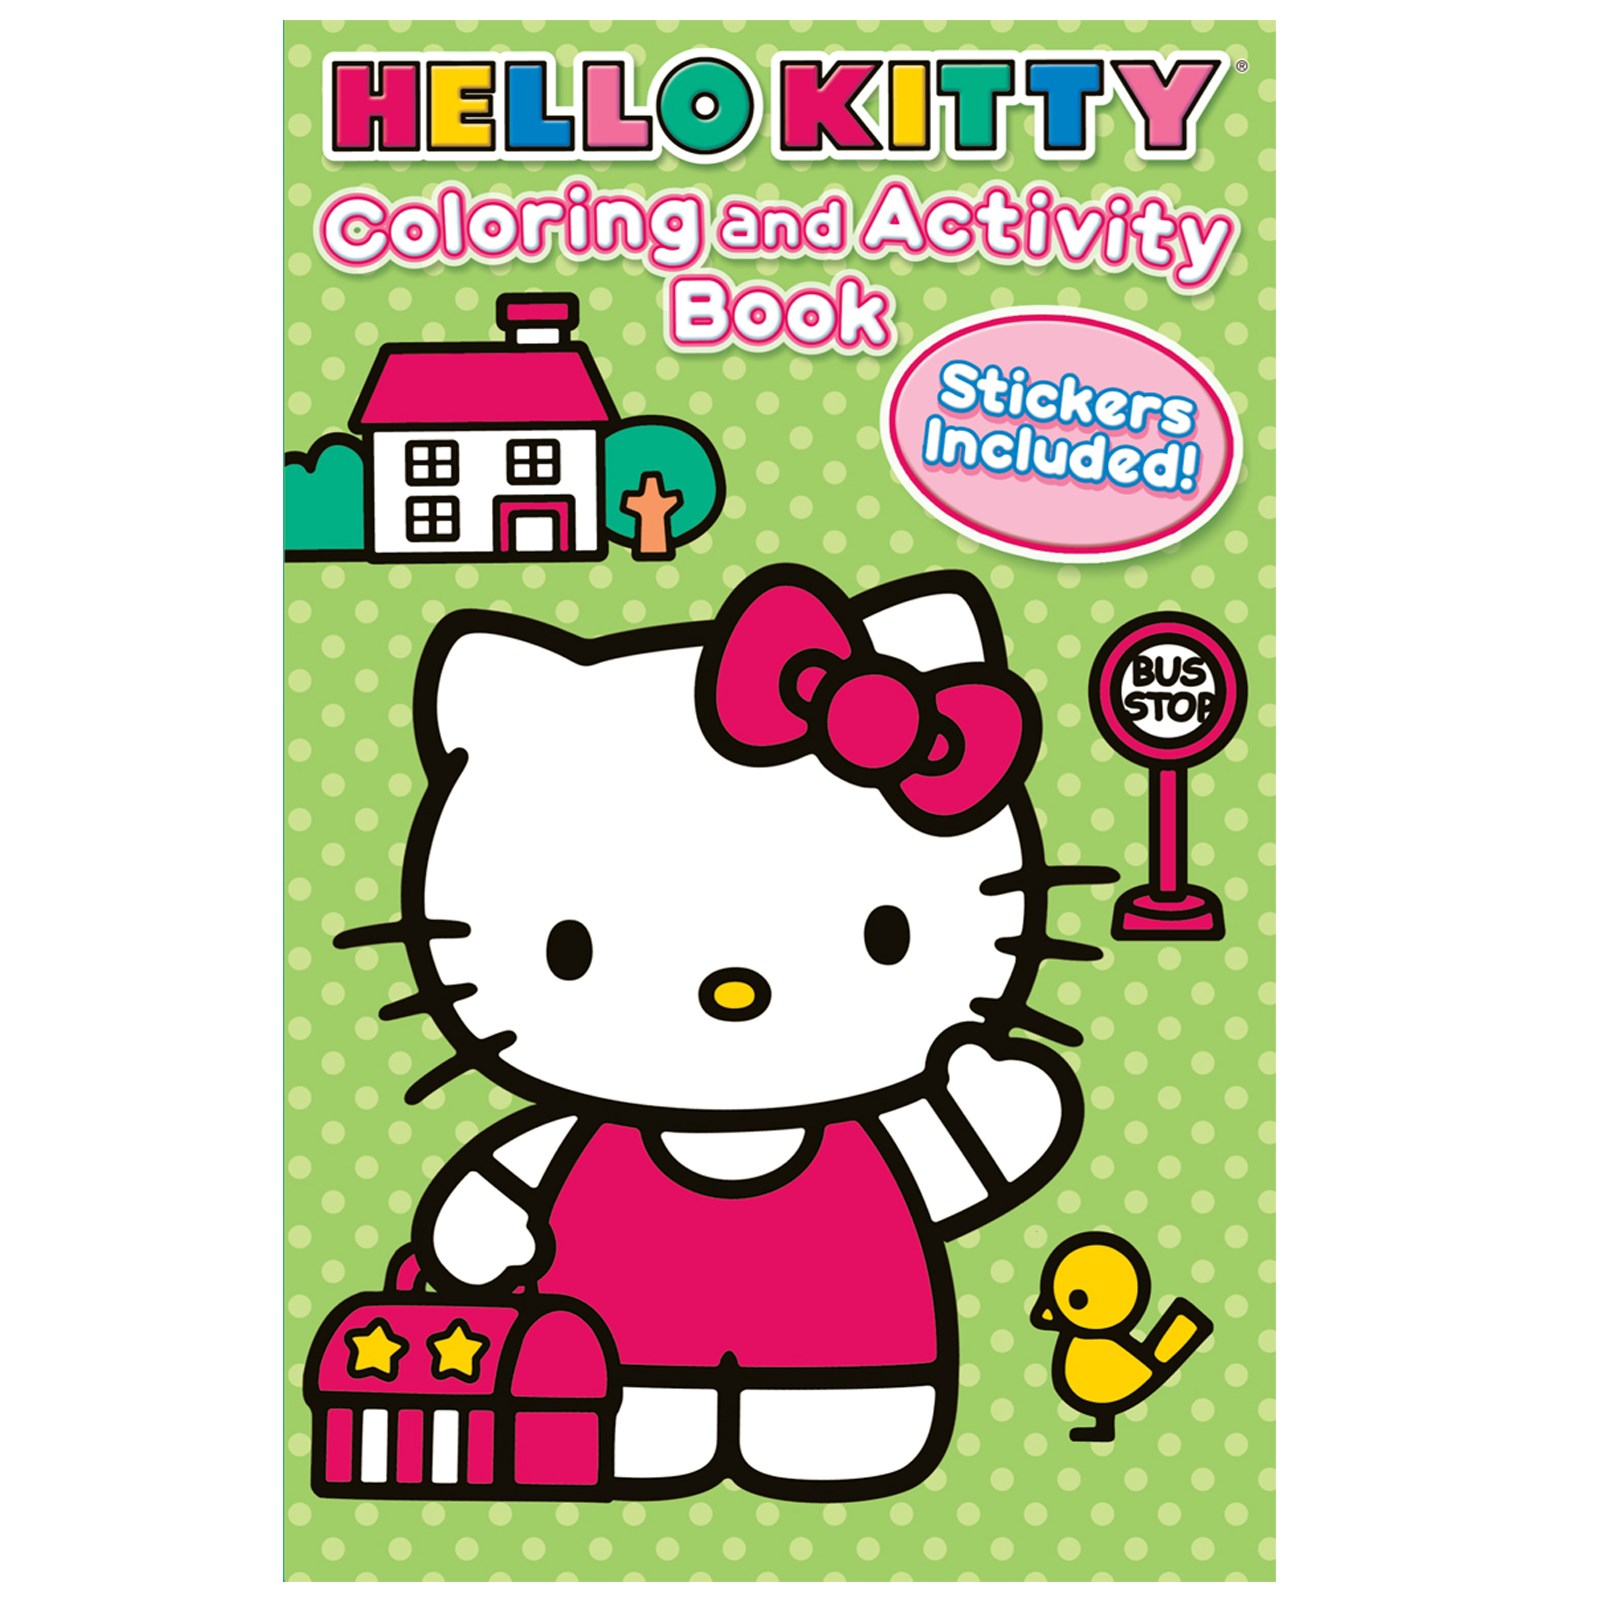 Image of Hello Kitty Coloring and Activity Book with Crayons